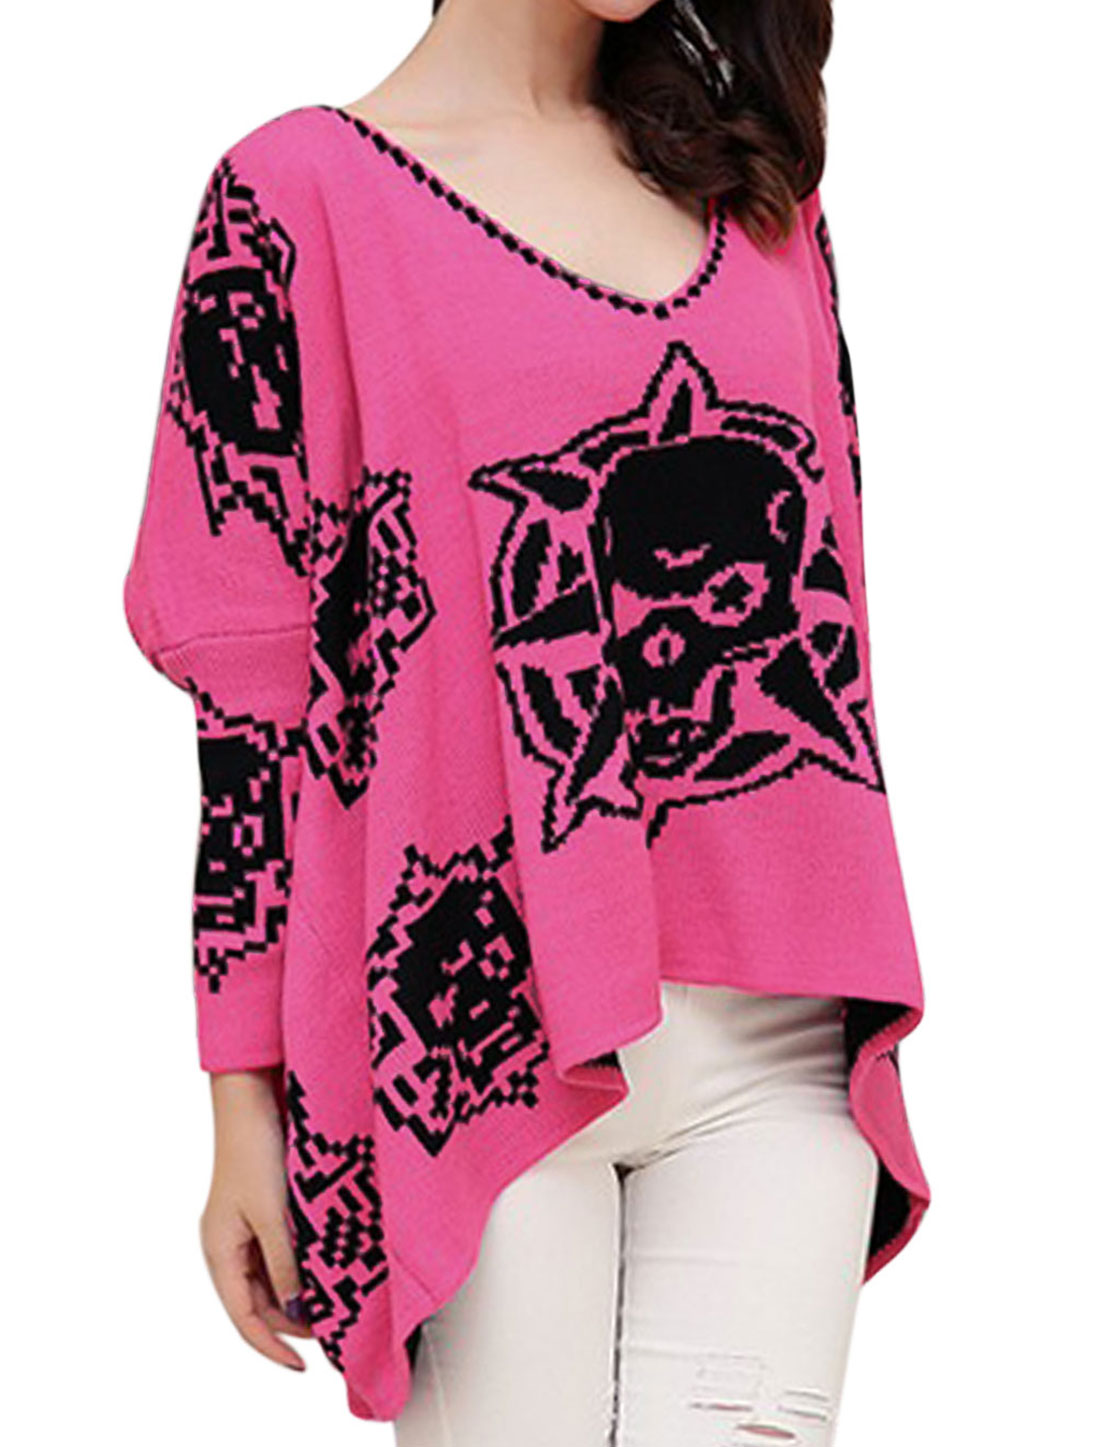 Ladies Fuchsia V Neck Long Sleeves Pullover Leisure Sweater M